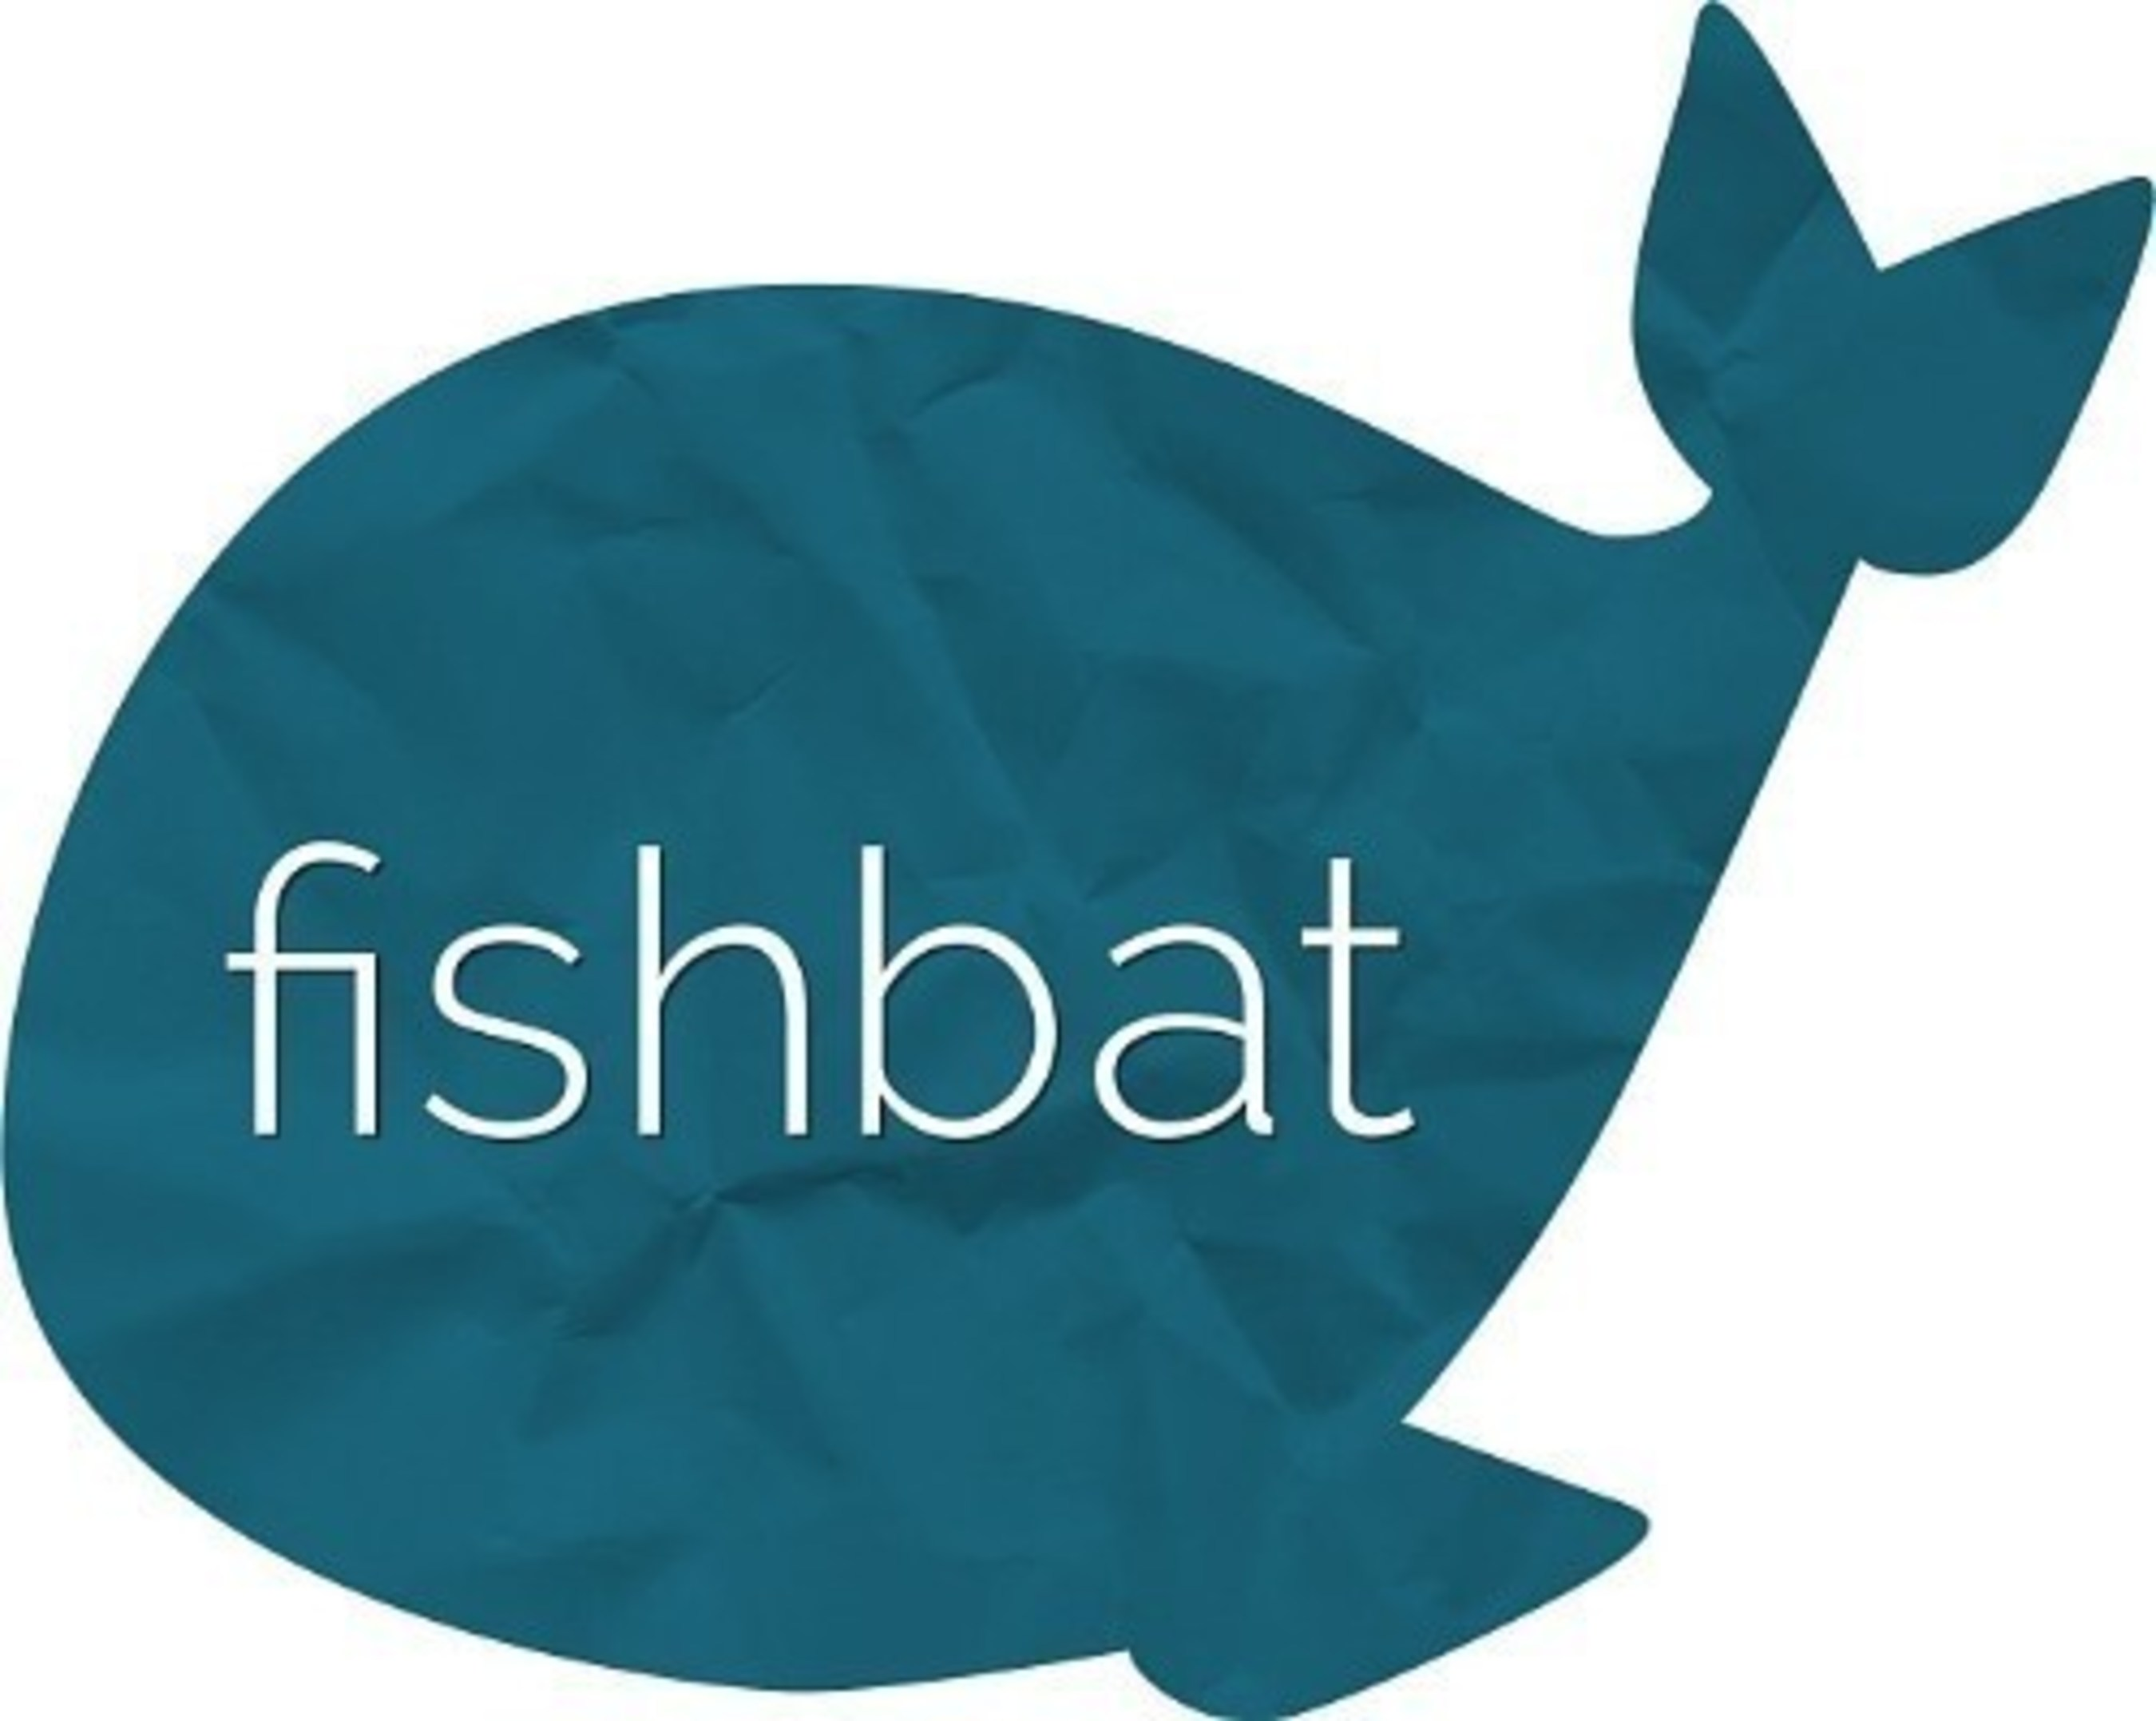 Internet Marketing Company fishbat Shares 3 Ways Social Media Hashtags Benefit SEO